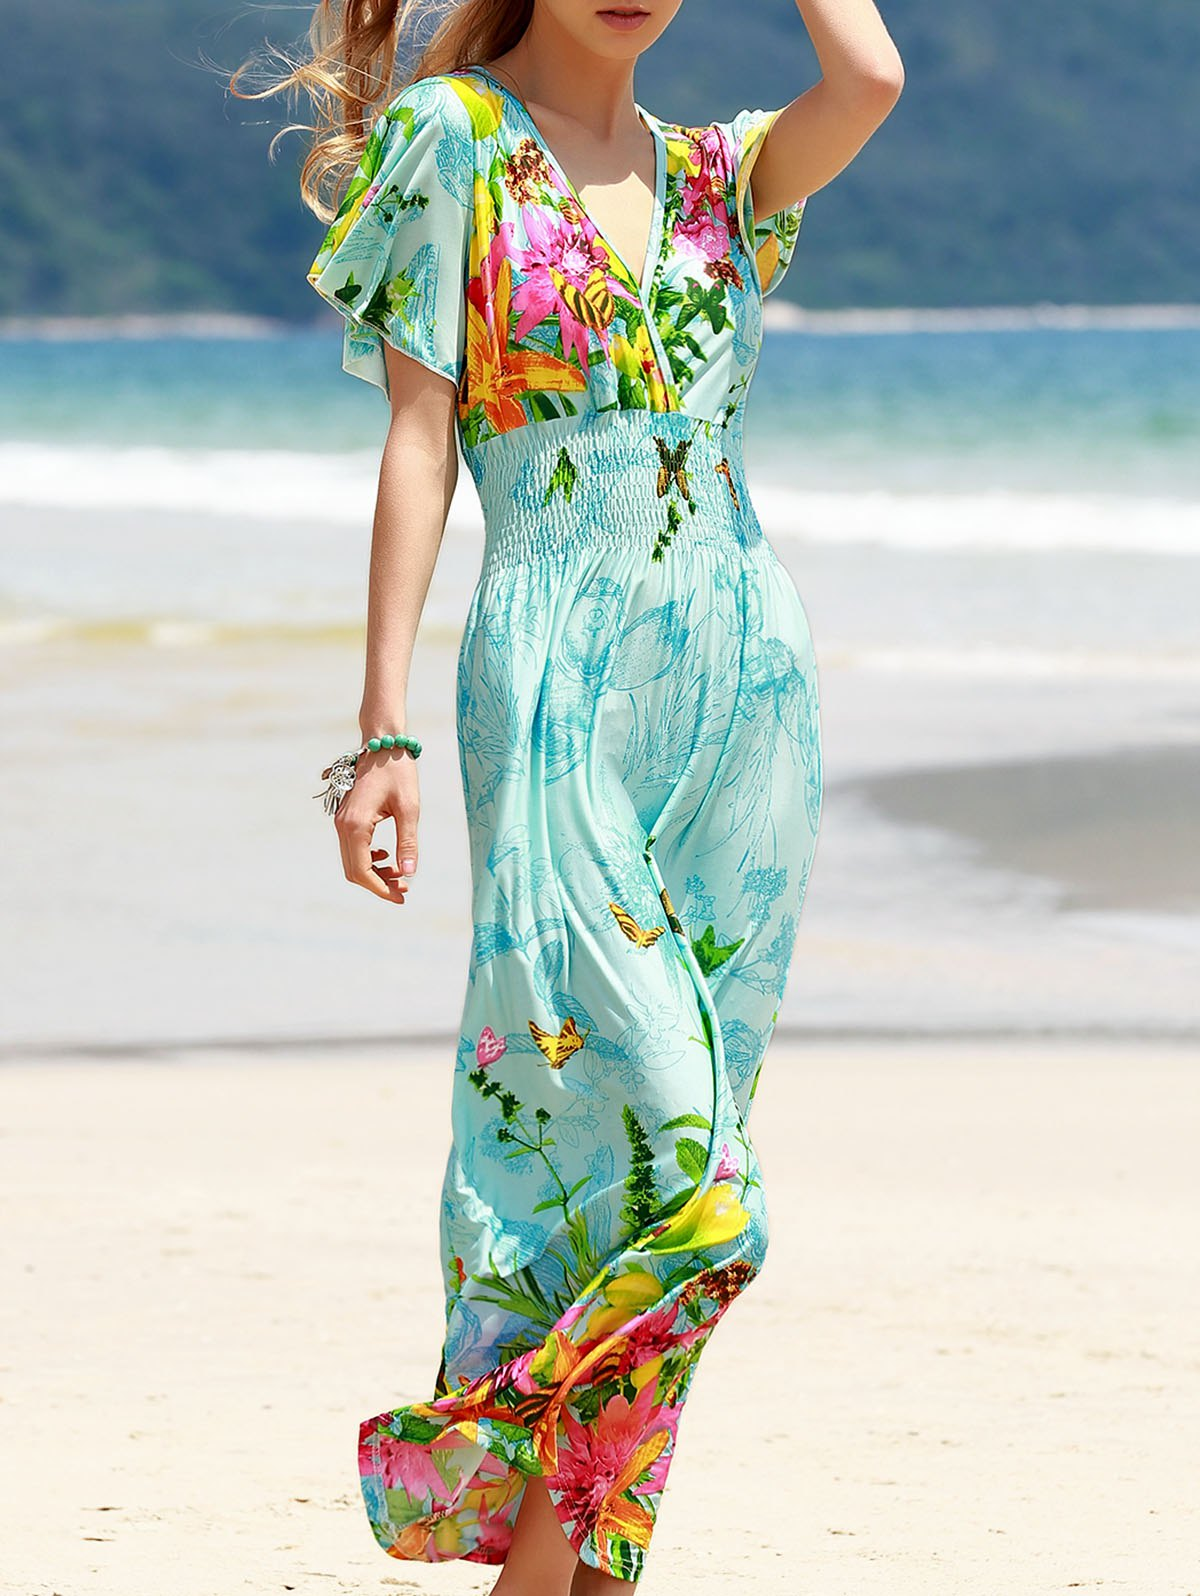 Bohemian Short Sleeve Plunging Neck Women's Floral Dress - BLUE ONE SIZE(FIT SIZE XS TO M)